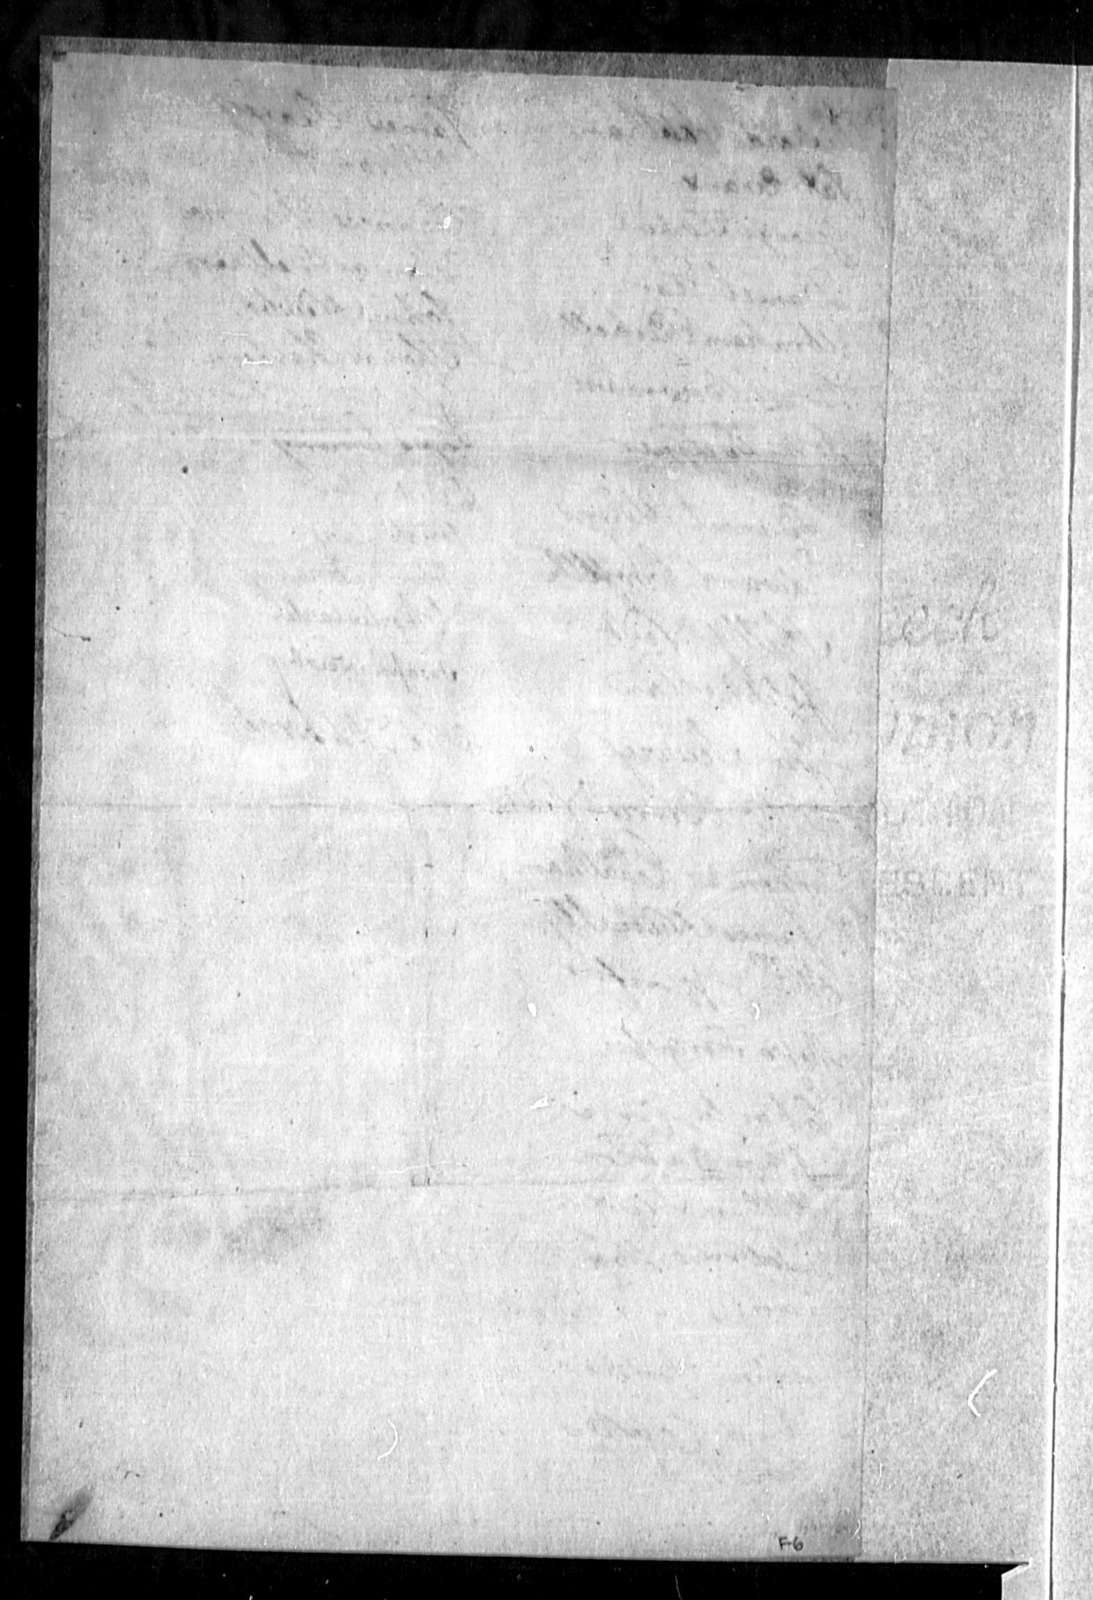 November 20, 1787, Chesterfield, For some plan whereby all would benefit from glebes, i.e., sale of glebes.